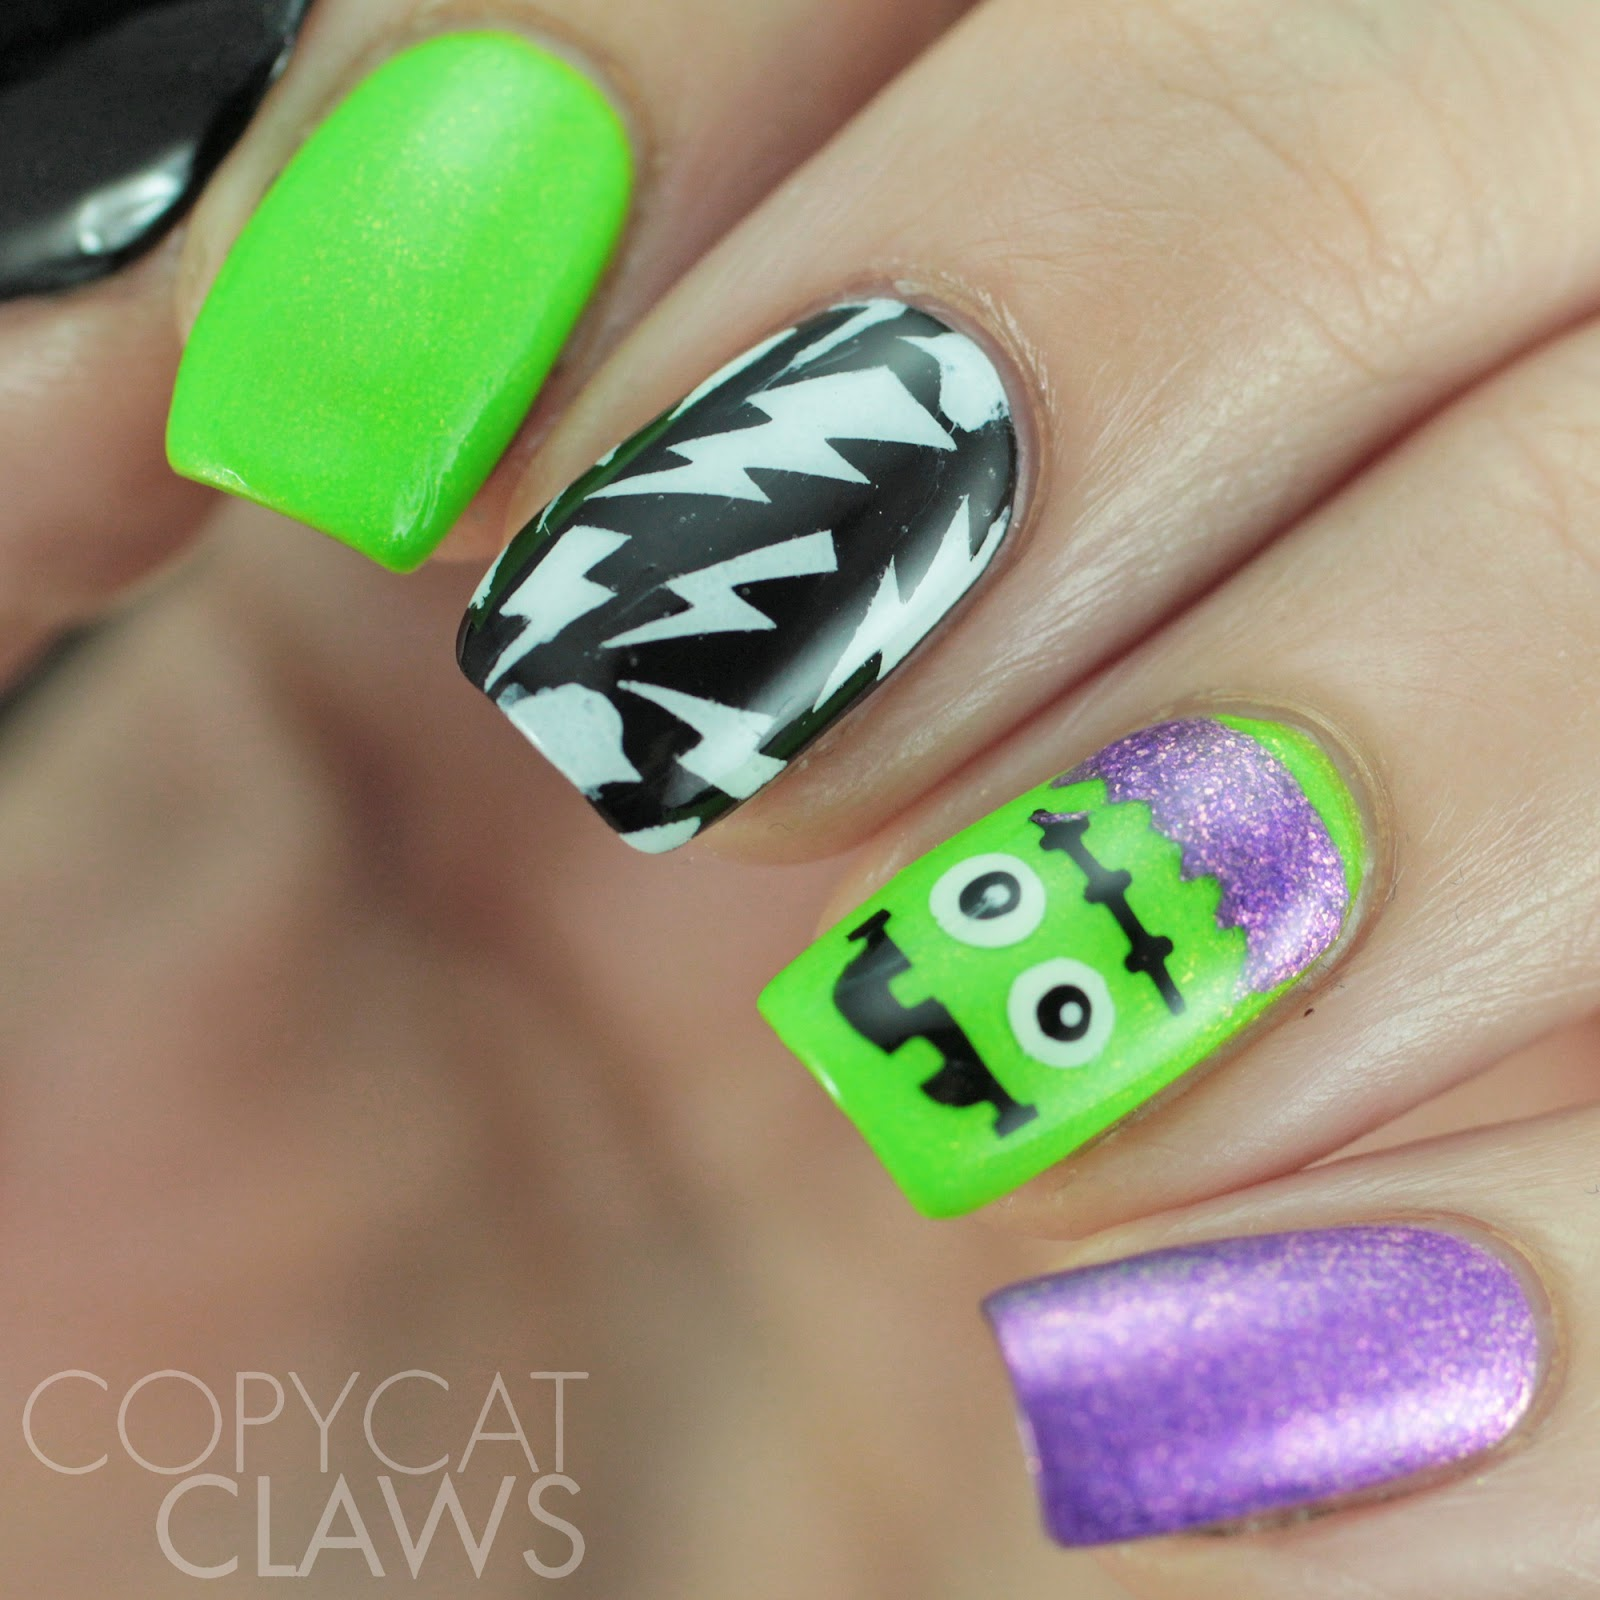 Copycat Claws: Whats Up Nails Halloween Nail Stencils